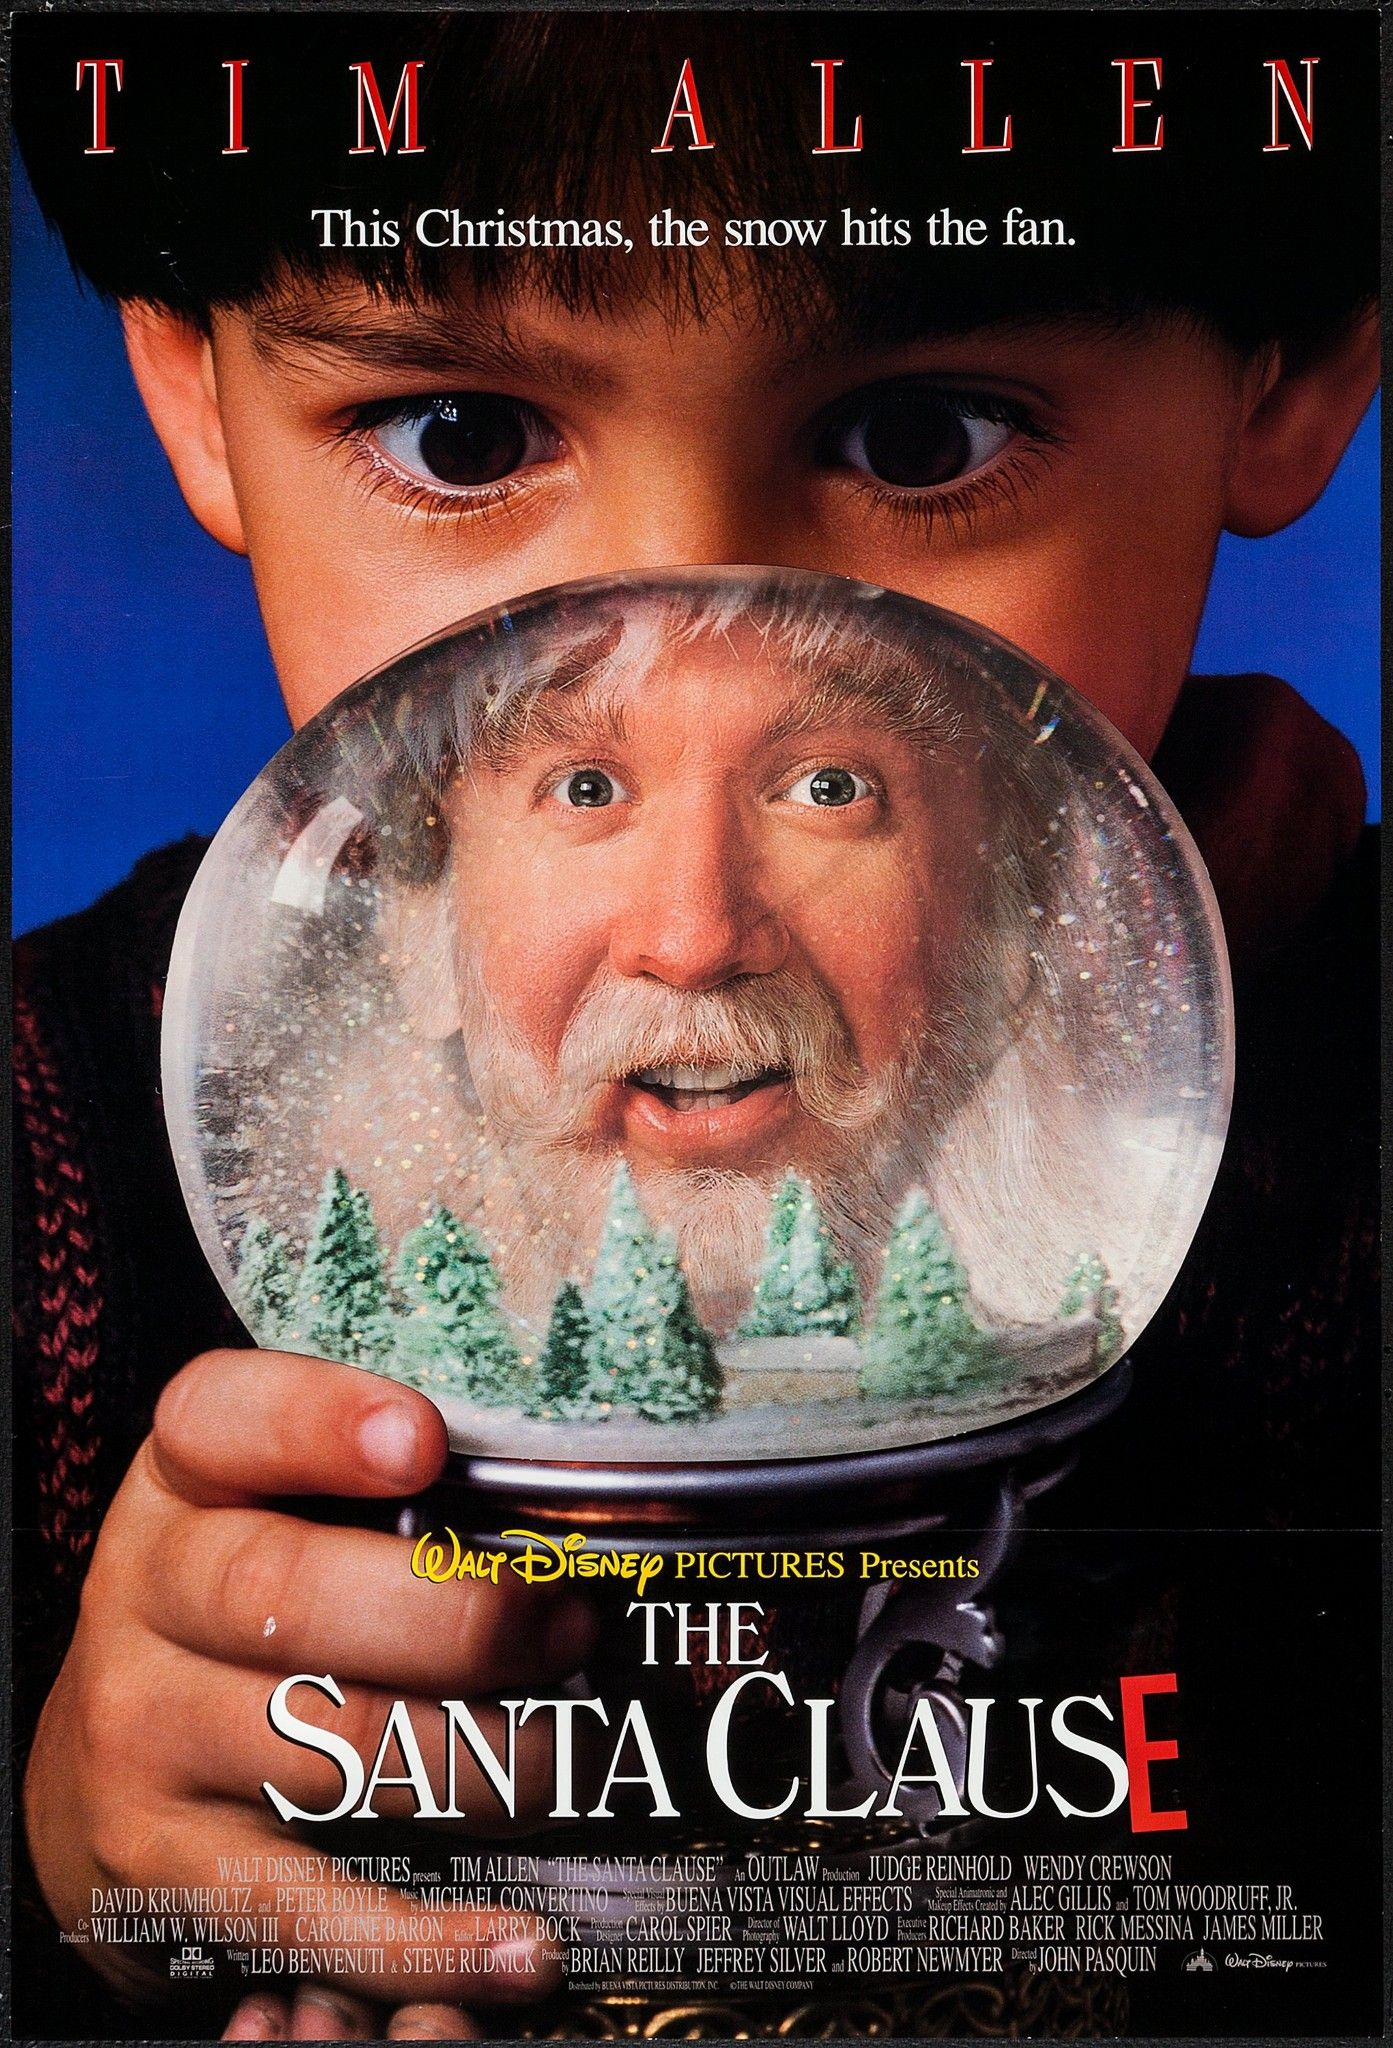 The Santa Clause crazy how old this movie is already